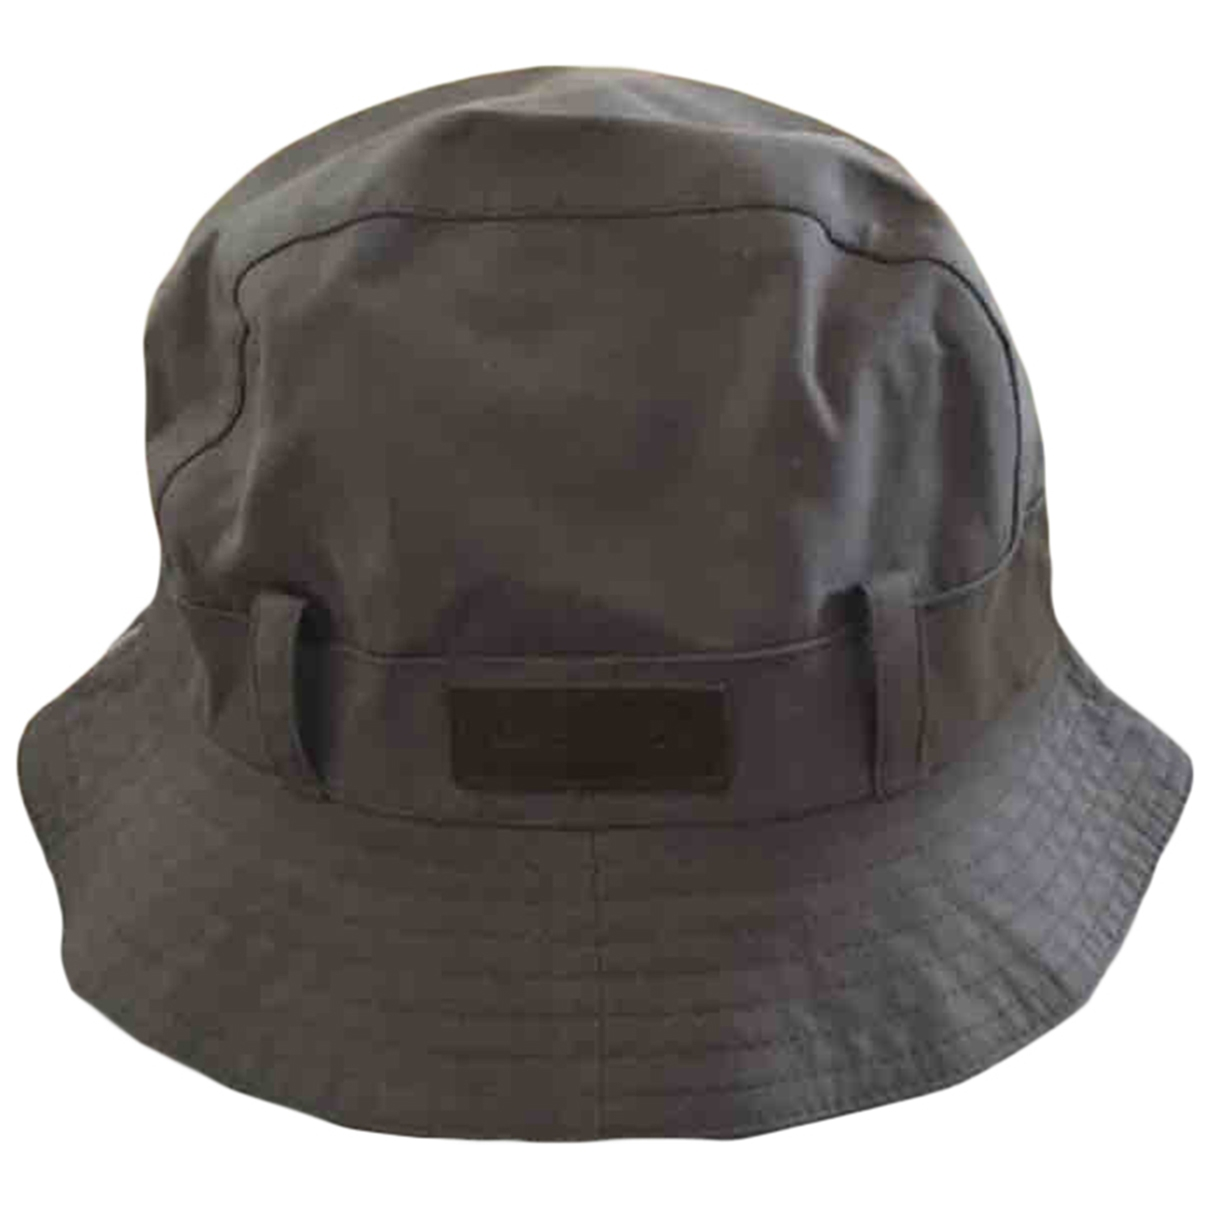 Louis Vuitton \N Anthracite Cotton hat & pull on hat for Men M International